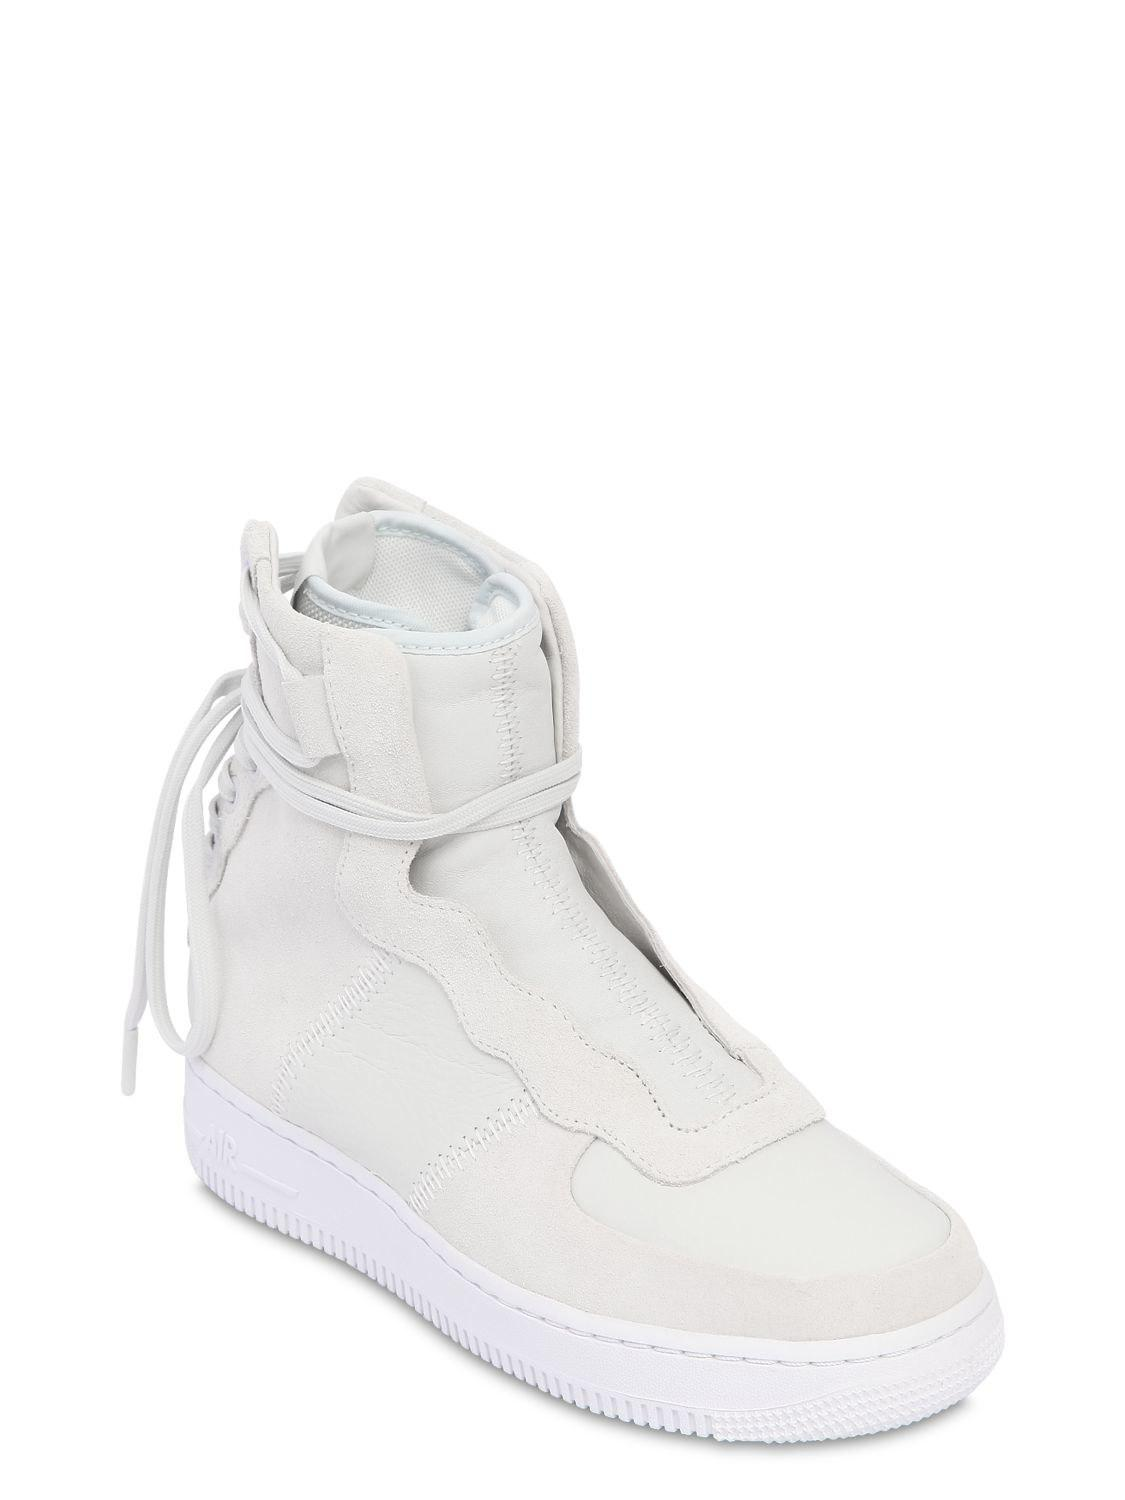 Nike Suede Air Force 1 Rebel Xx Lace-up Sneakers in White